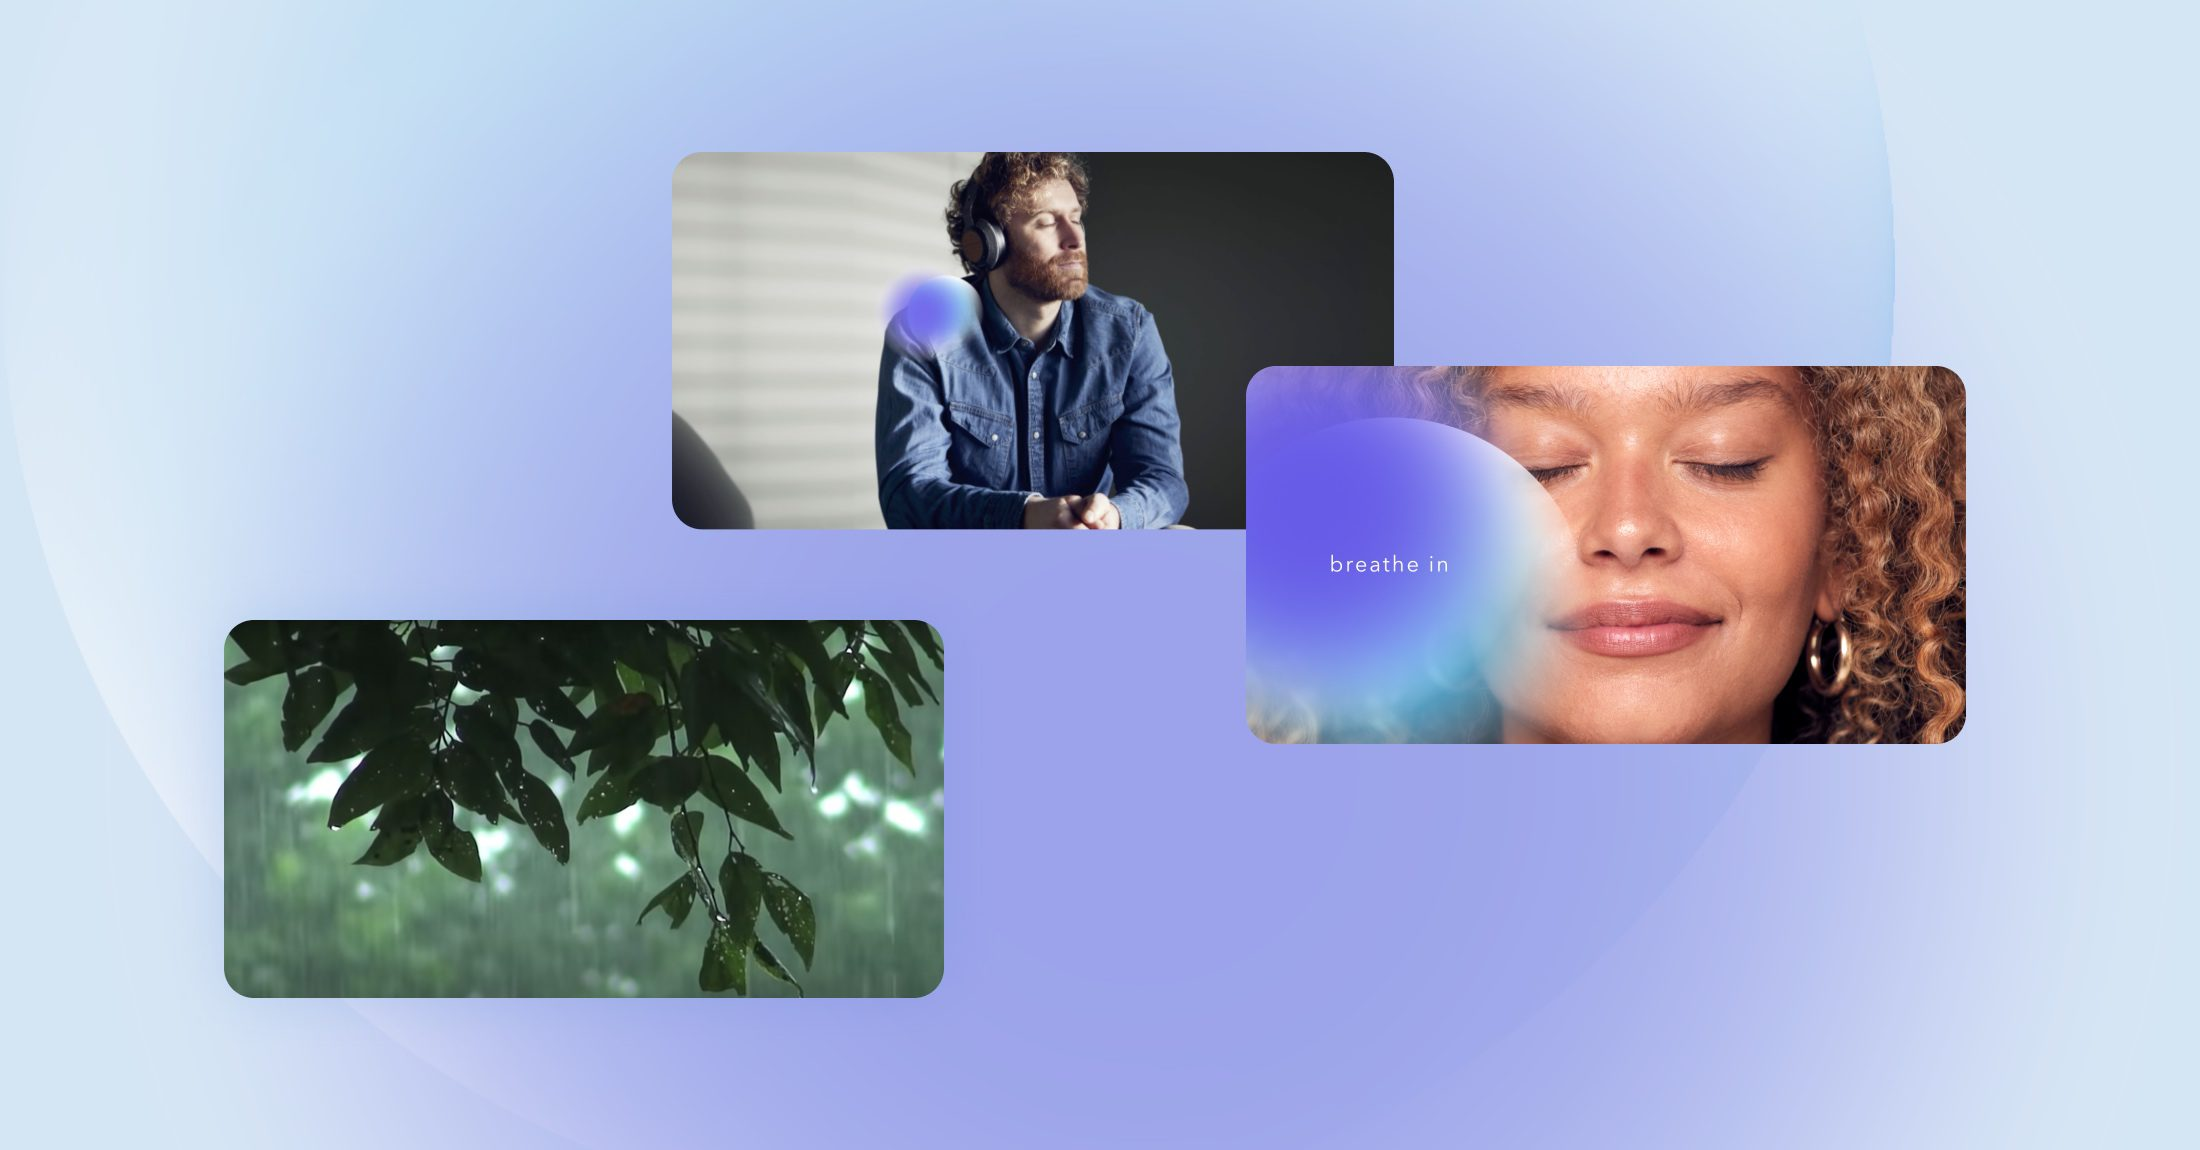 CALM: 3 Mid-Work Mindfulness Exercises You Can Do in 30 Seconds or Less